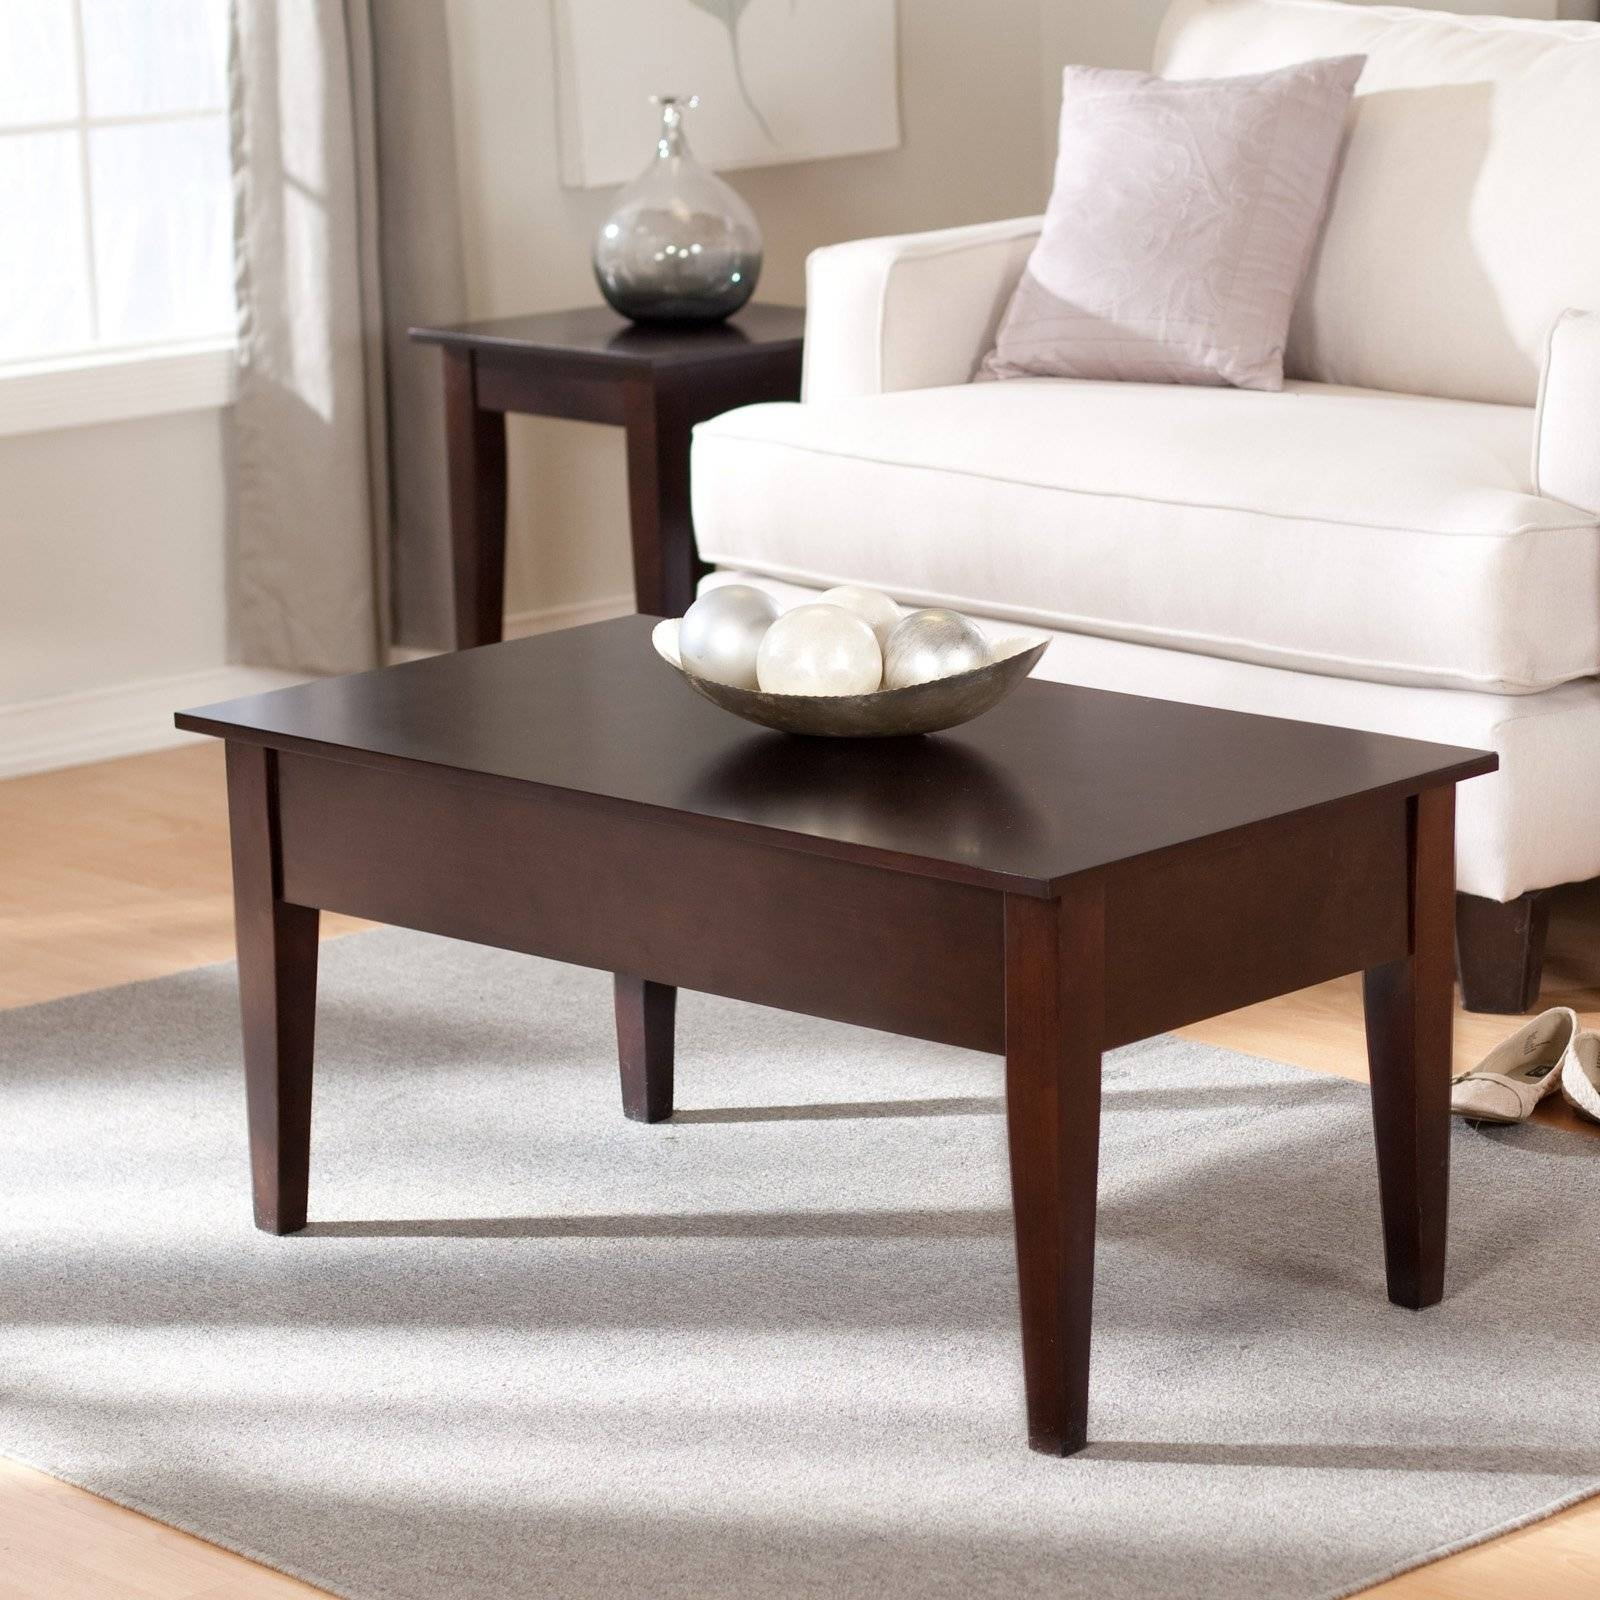 Turner Lift Top Coffee Table - Espresso | Hayneedle for White And Brown Coffee Tables (Image 30 of 30)